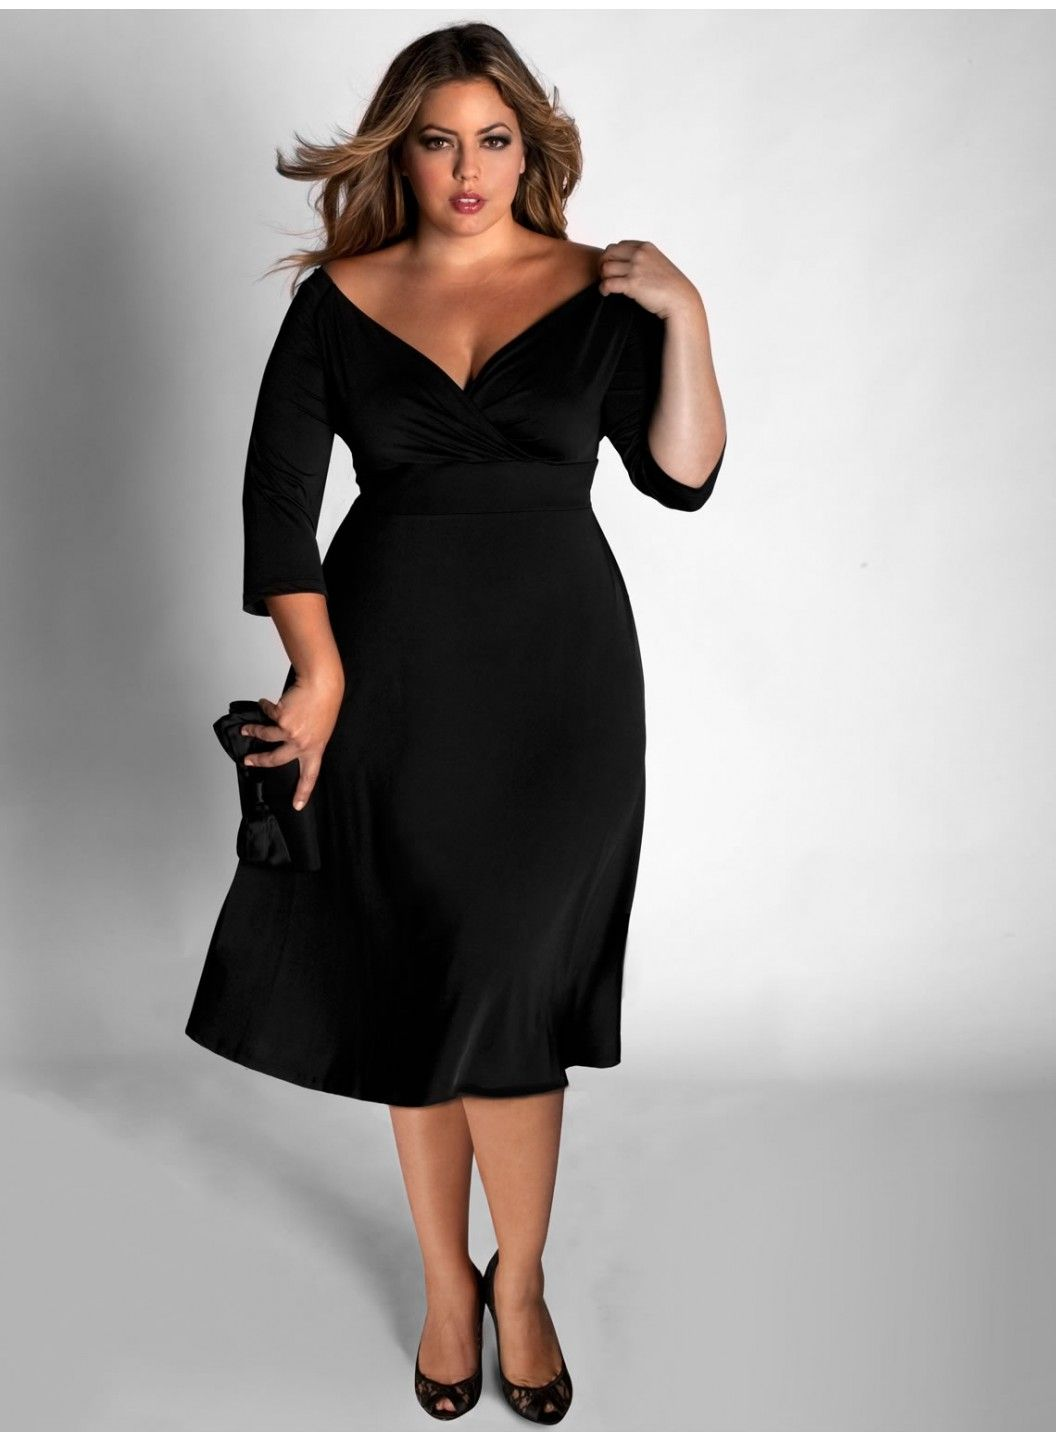 Cheap full figure cocktail dresses